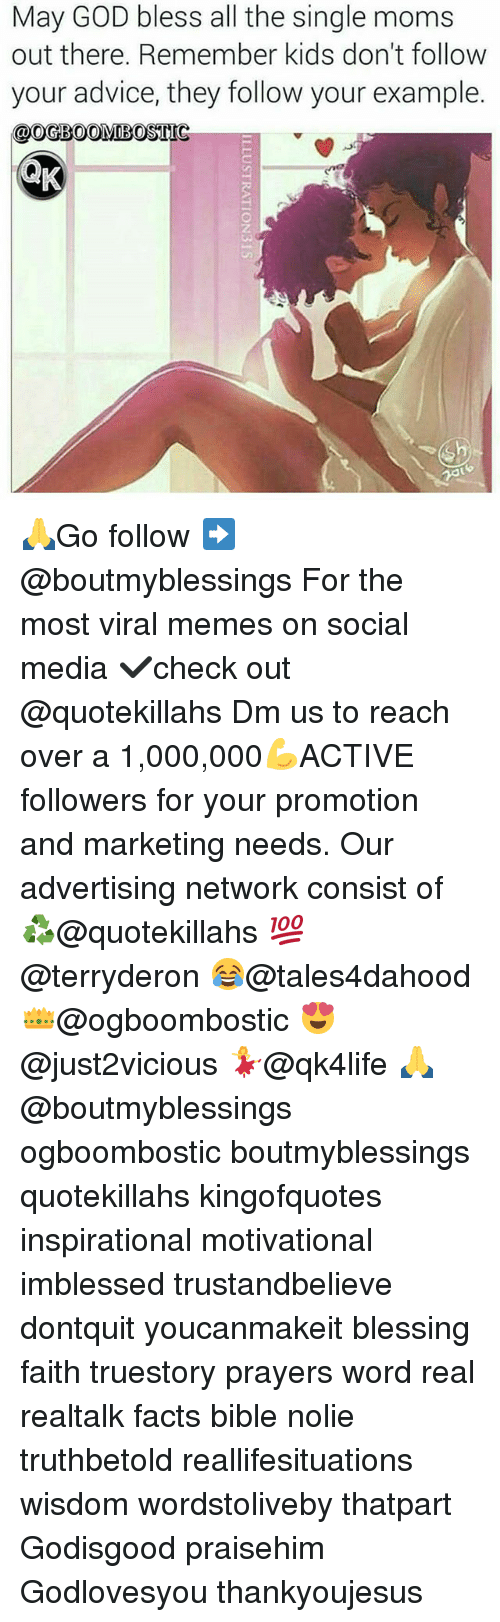 Single Moms: May GOD bless all the single moms  out there. Remember kids don't follow  your advice, they follow your example.  OOGBOOMIBOSTIG 🙏Go follow ➡@boutmyblessings For the most viral memes on social media ✔check out @quotekillahs Dm us to reach over a 1,000,000💪ACTIVE followers for your promotion and marketing needs. Our advertising network consist of ♻@quotekillahs 💯@terryderon 😂@tales4dahood 👑@ogboombostic 😍@just2vicious 💃@qk4life 🙏@boutmyblessings ogboombostic boutmyblessings quotekillahs kingofquotes inspirational motivational imblessed trustandbelieve dontquit youcanmakeit blessing faith truestory prayers word real realtalk facts bible nolie truthbetold reallifesituations wisdom wordstoliveby thatpart Godisgood praisehim Godlovesyou thankyoujesus